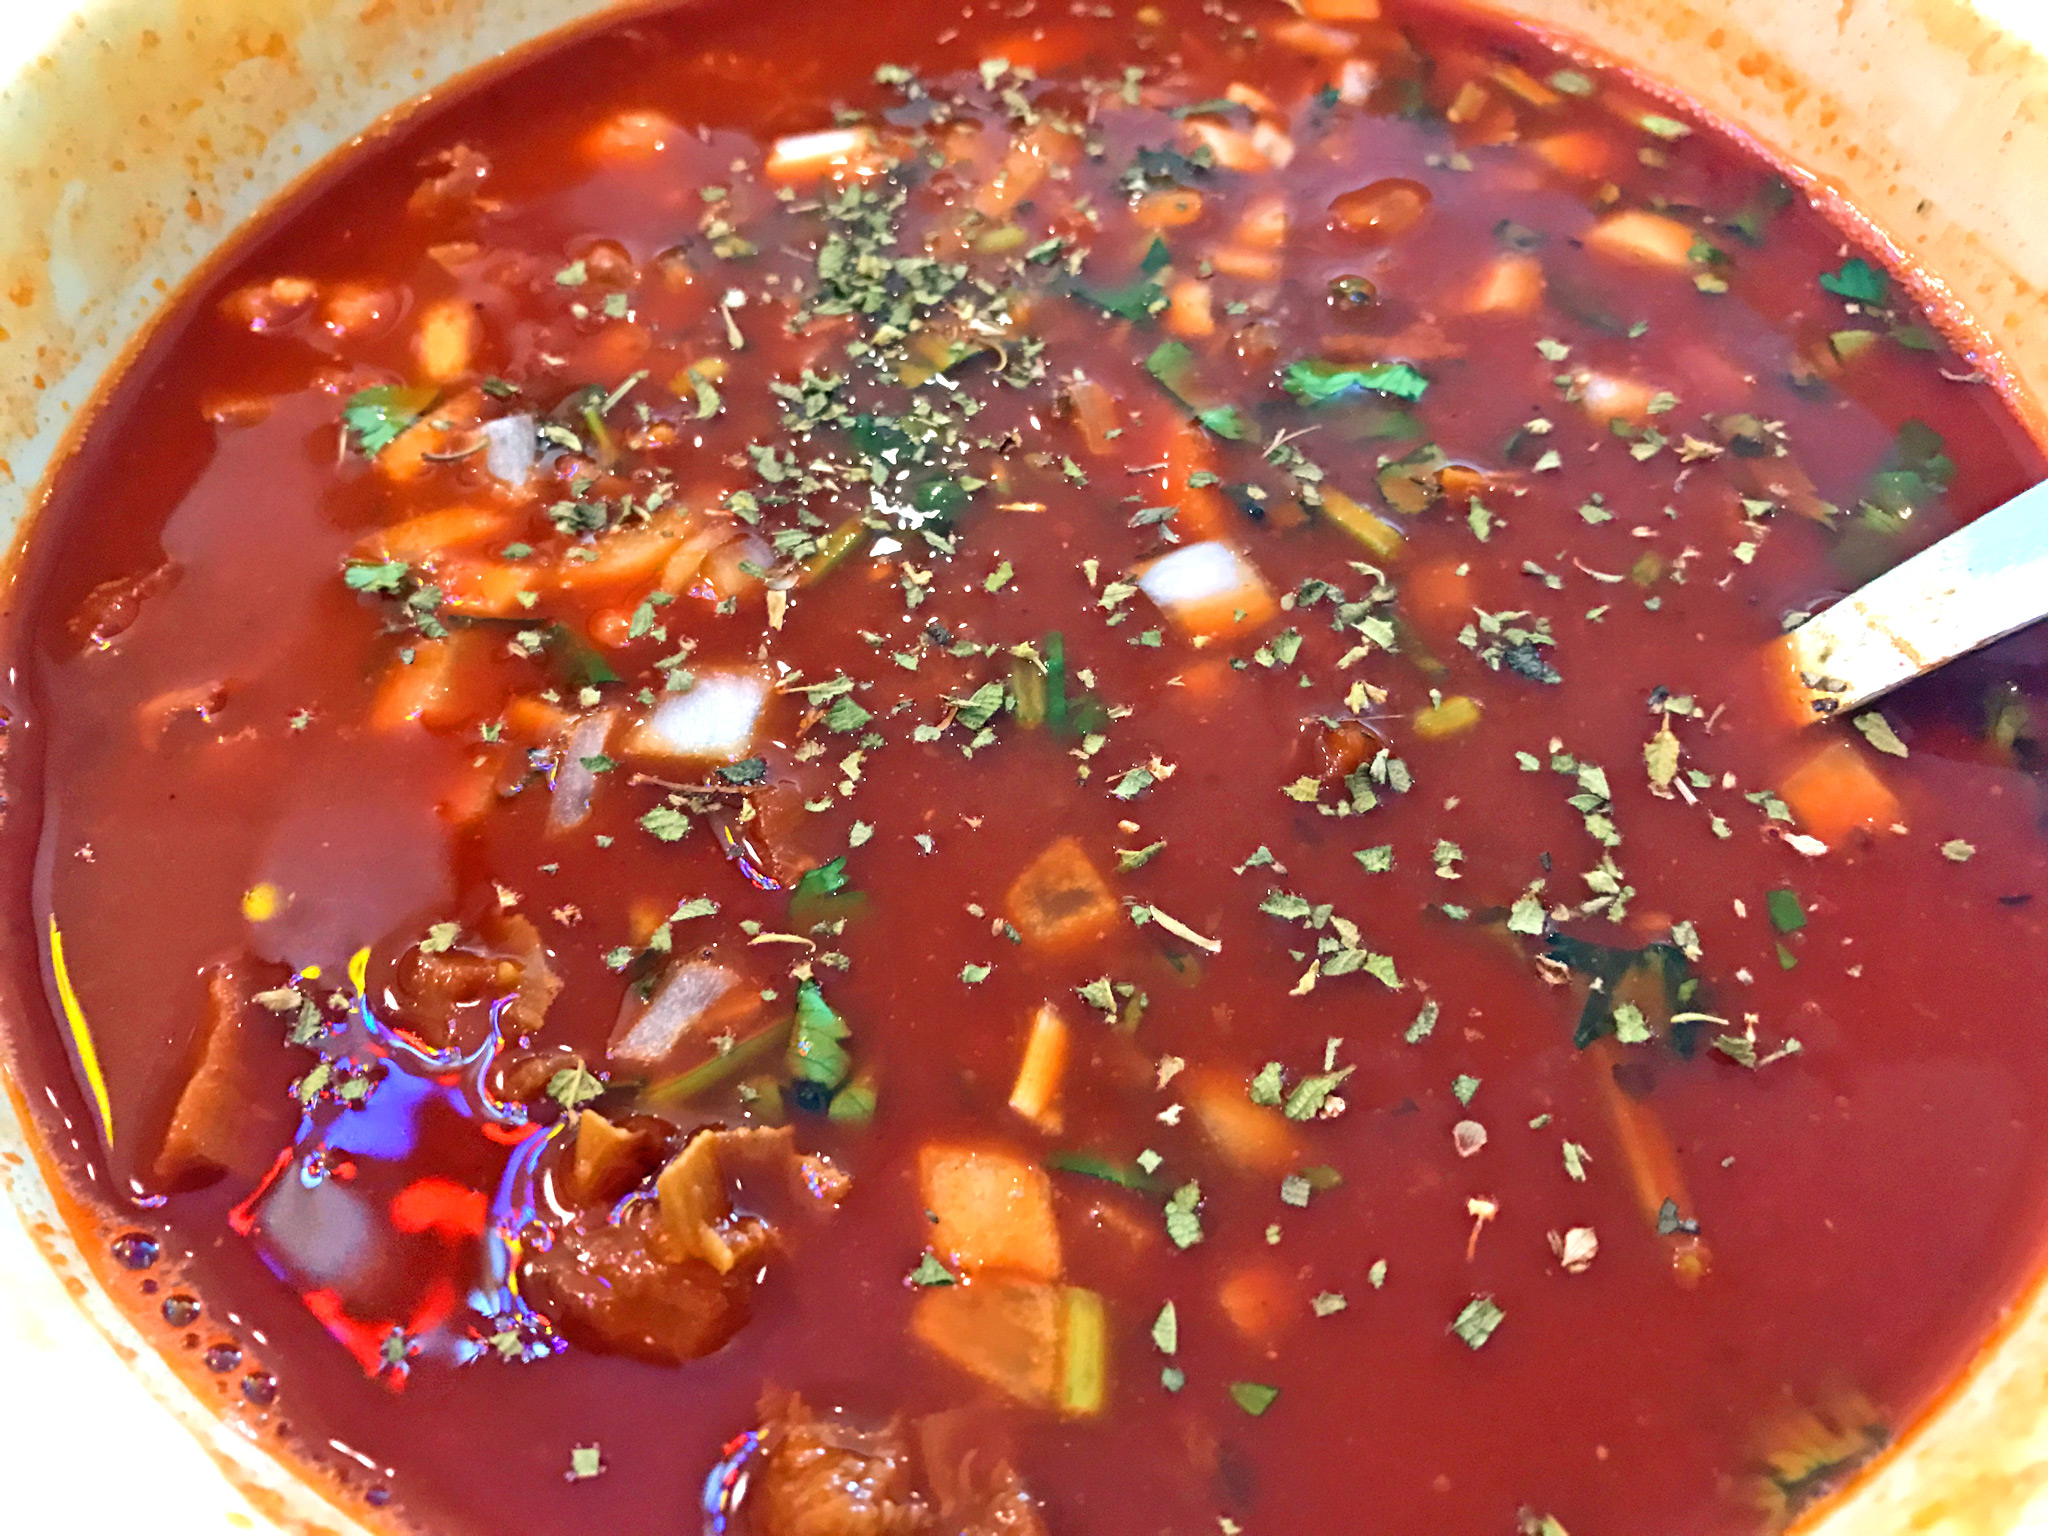 Authentic, Spicy & Delicious Menudo at Carmelita's